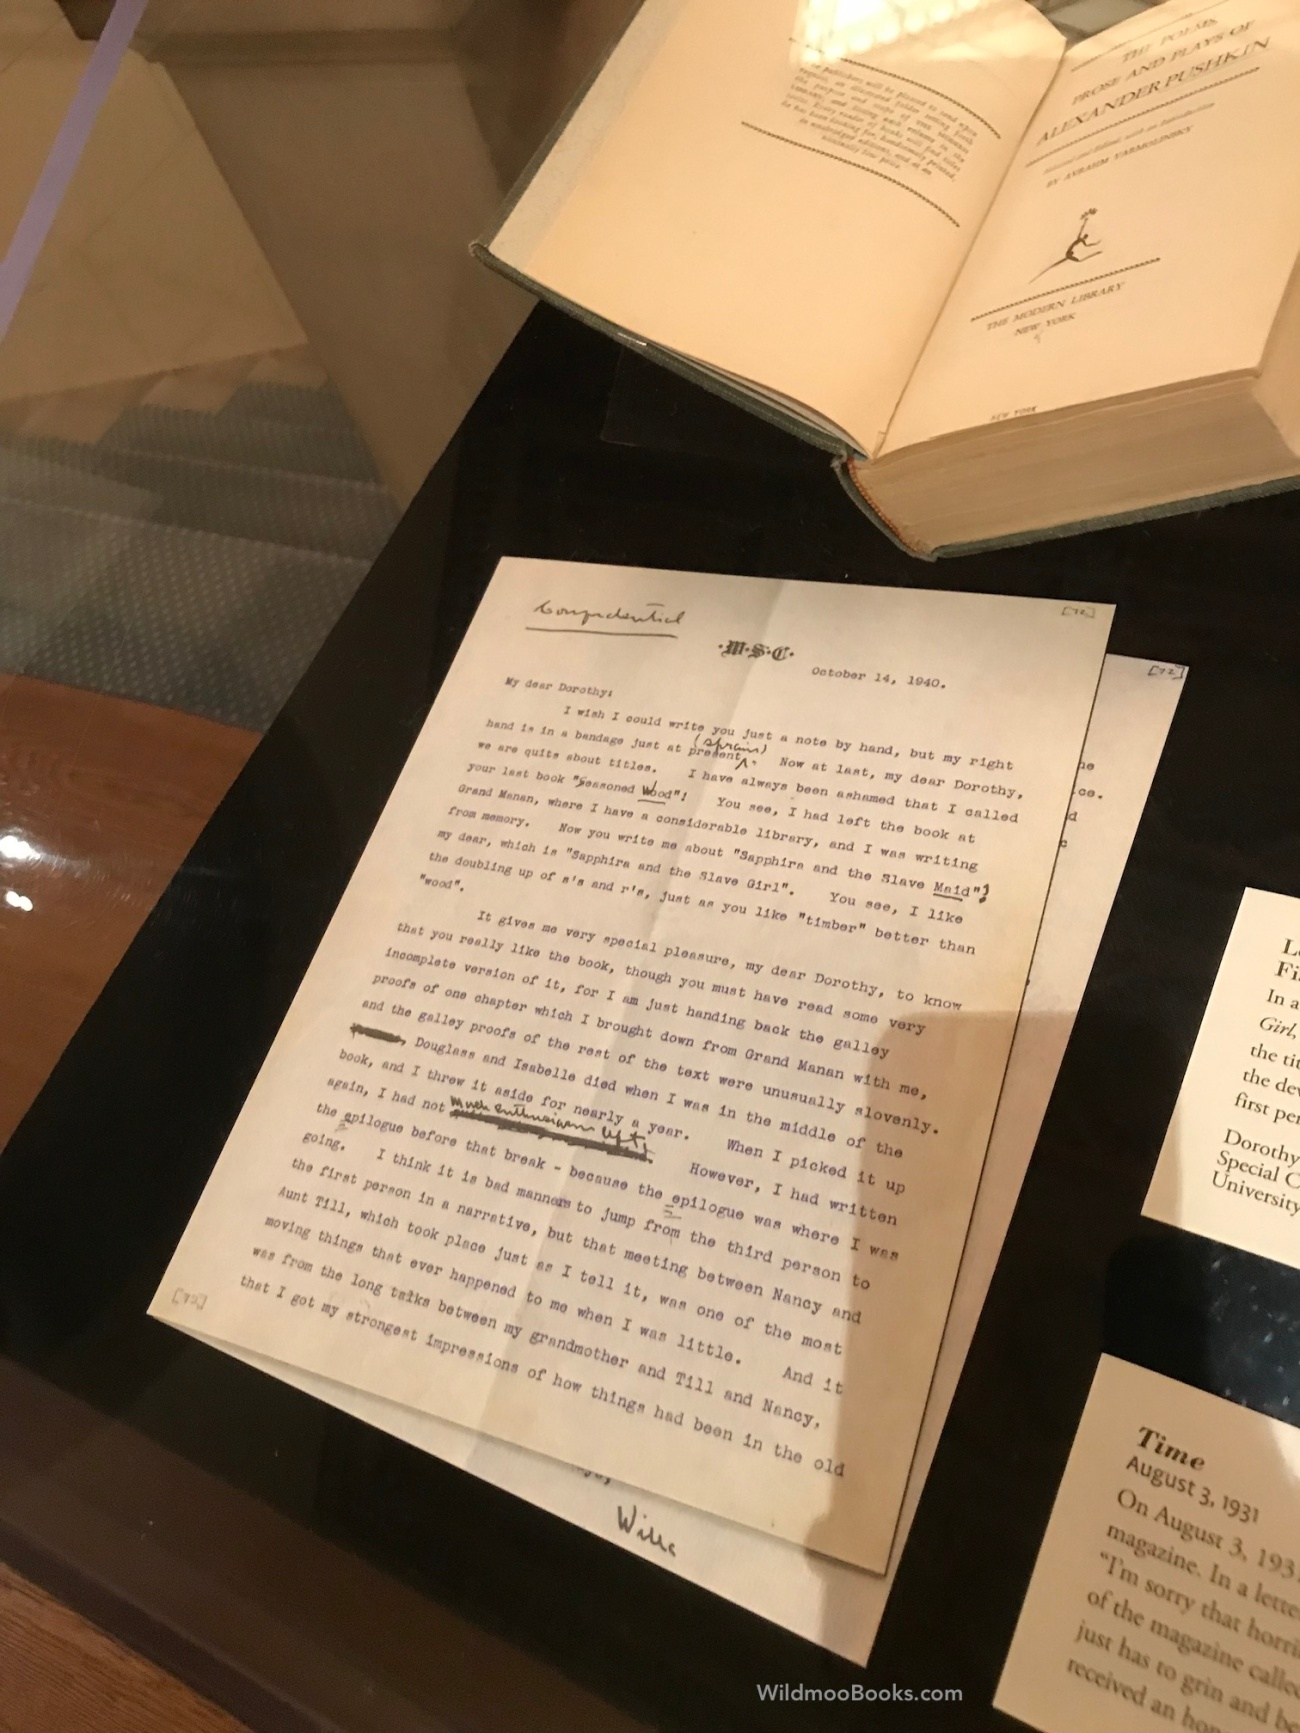 Willa Cather Exhibit at The New York Society Library - Cather Letter to Dorothy Canfield Fisher (WildmooBooks.com)